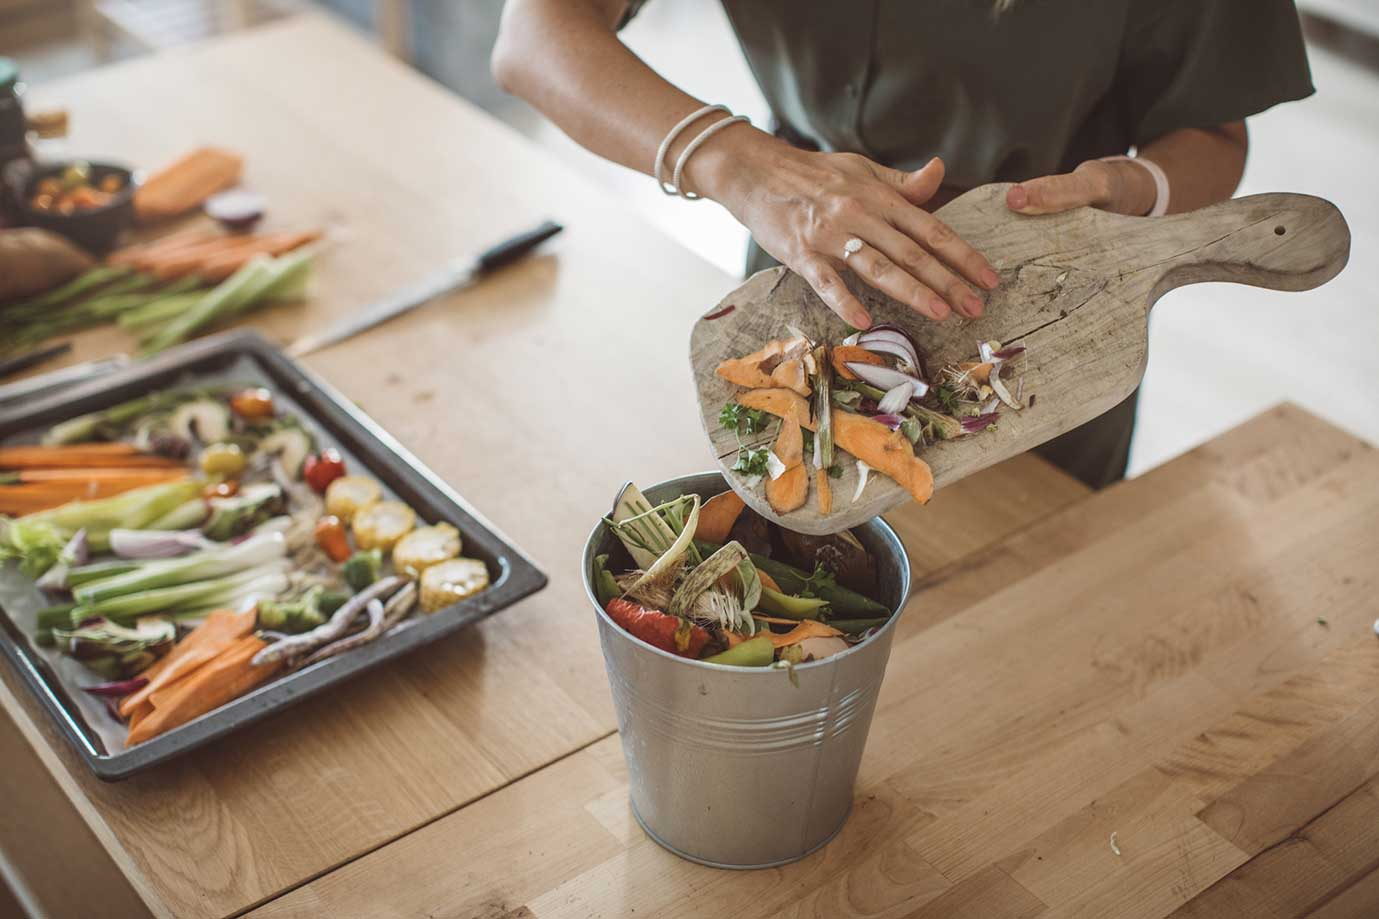 5 Sustainable Habits for Eco-Friendly Living